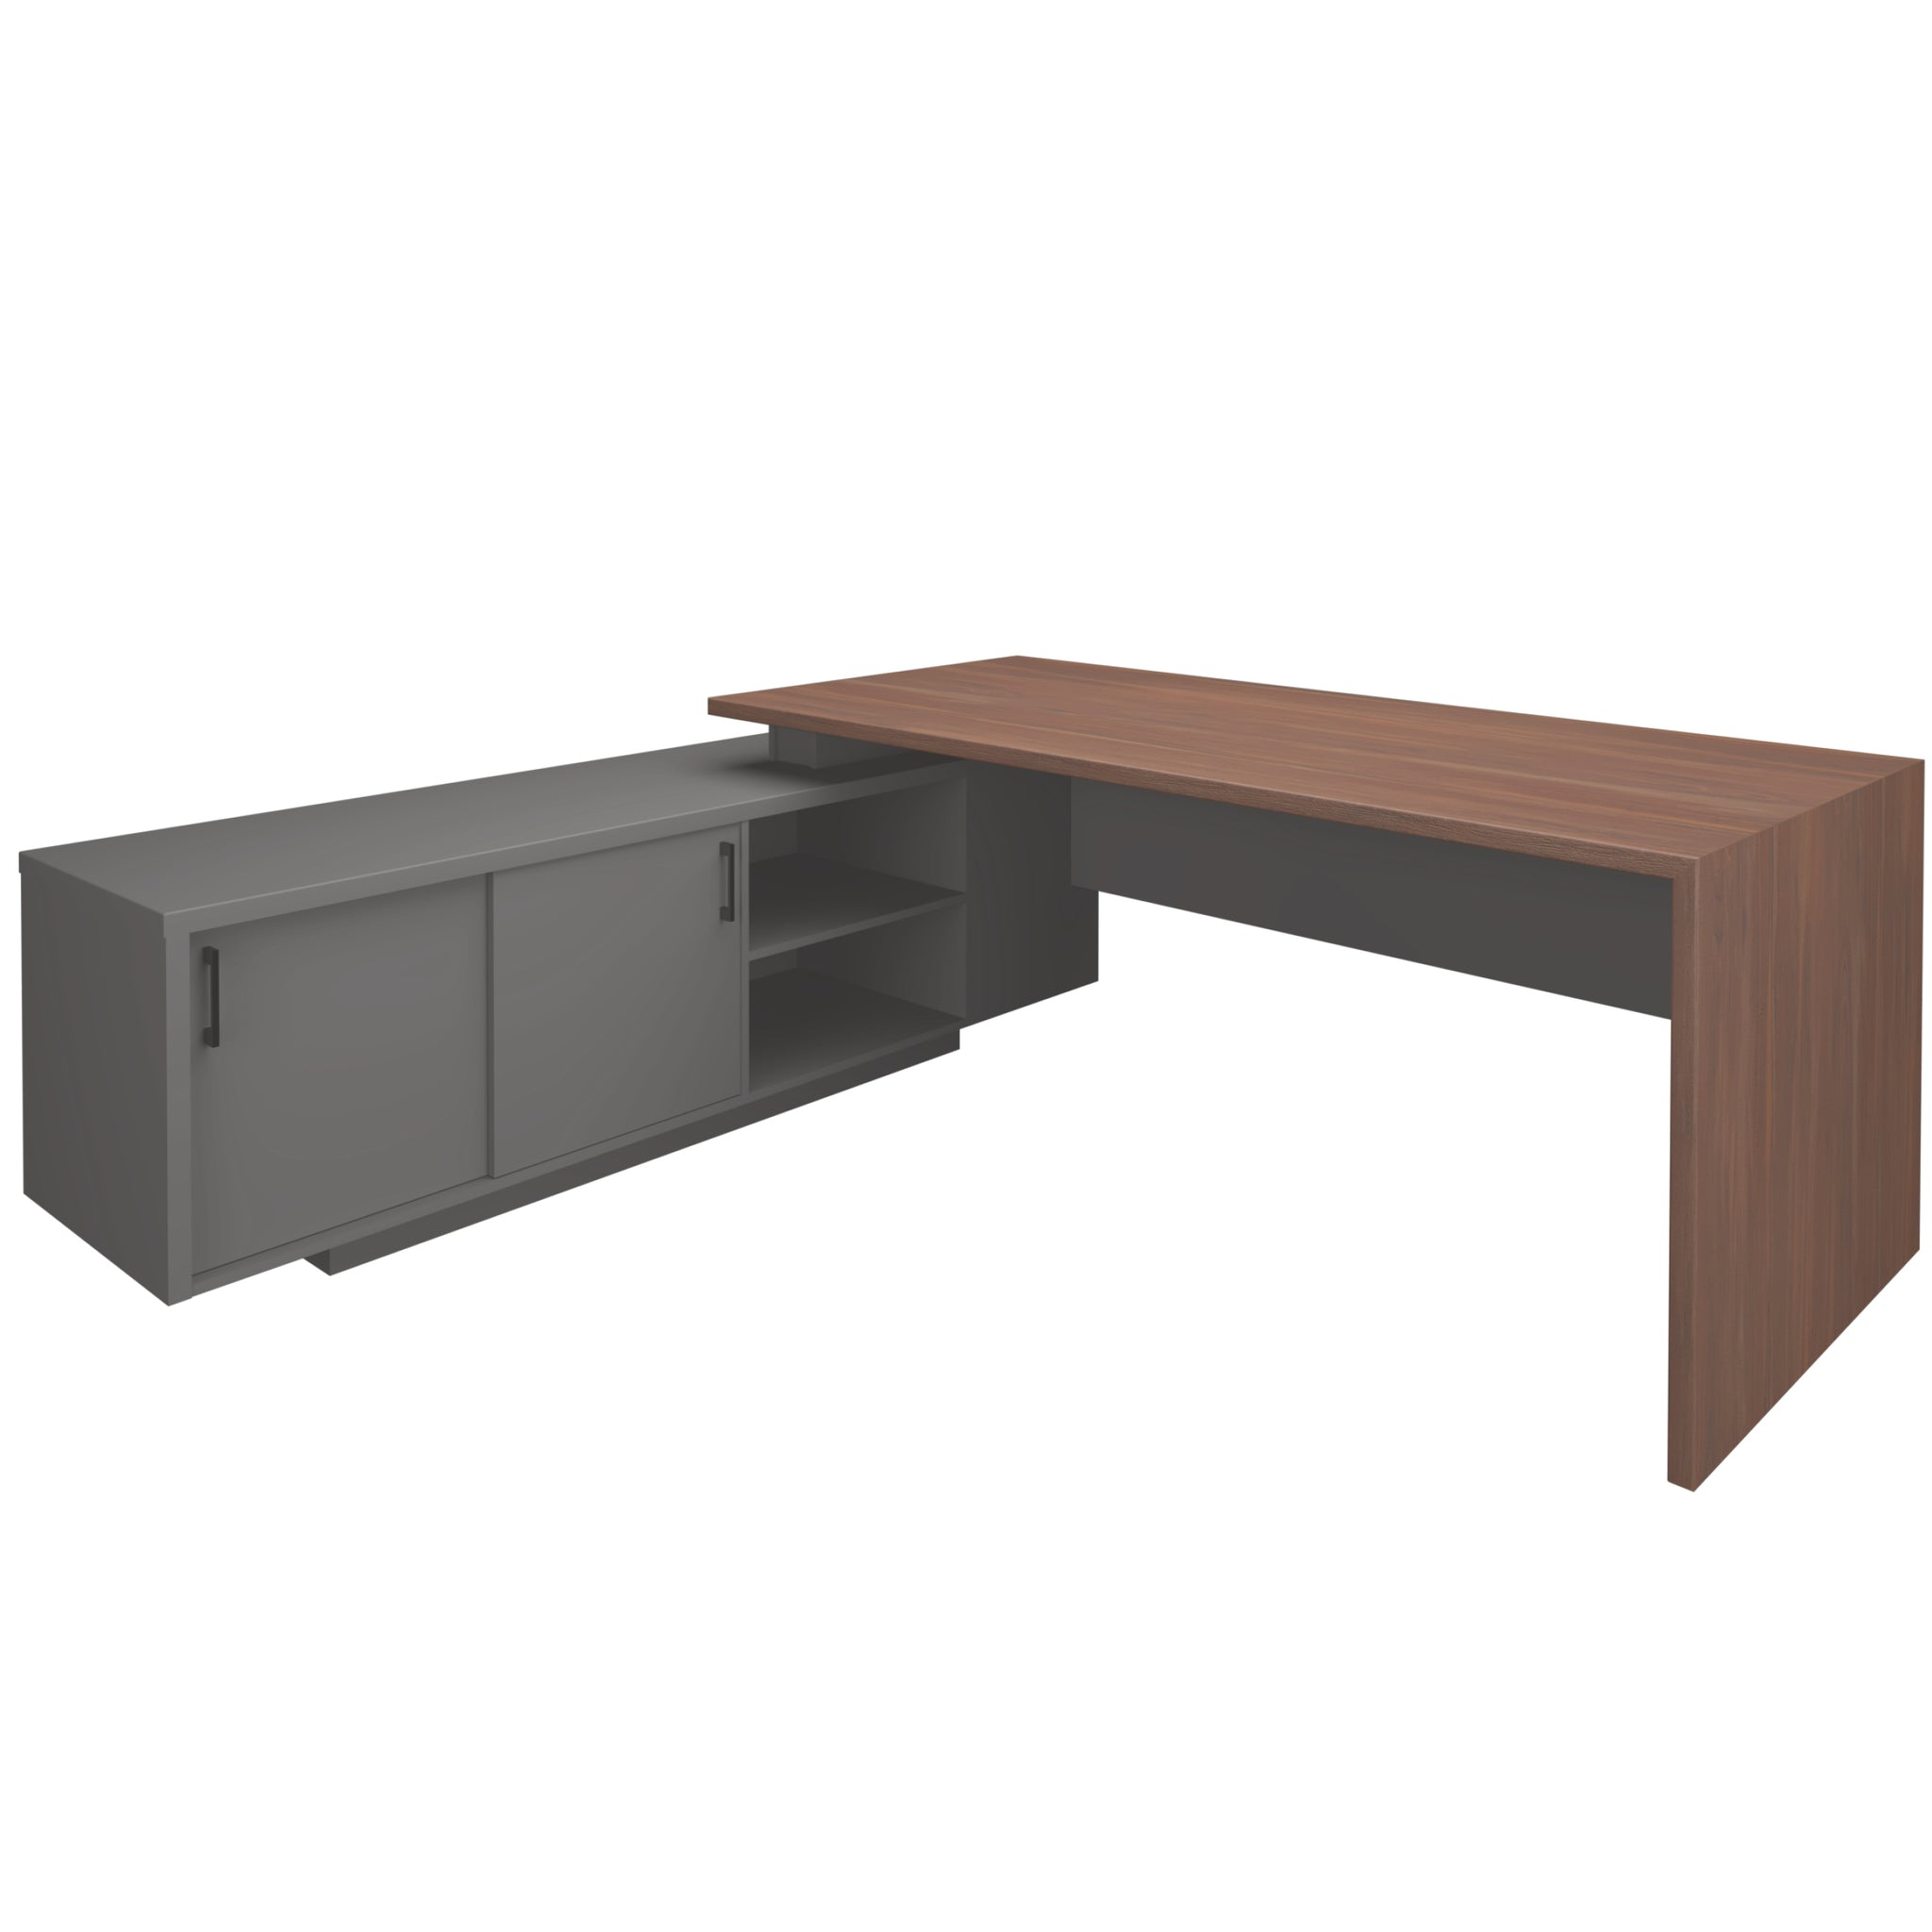 Hedcor Sapphire Desk